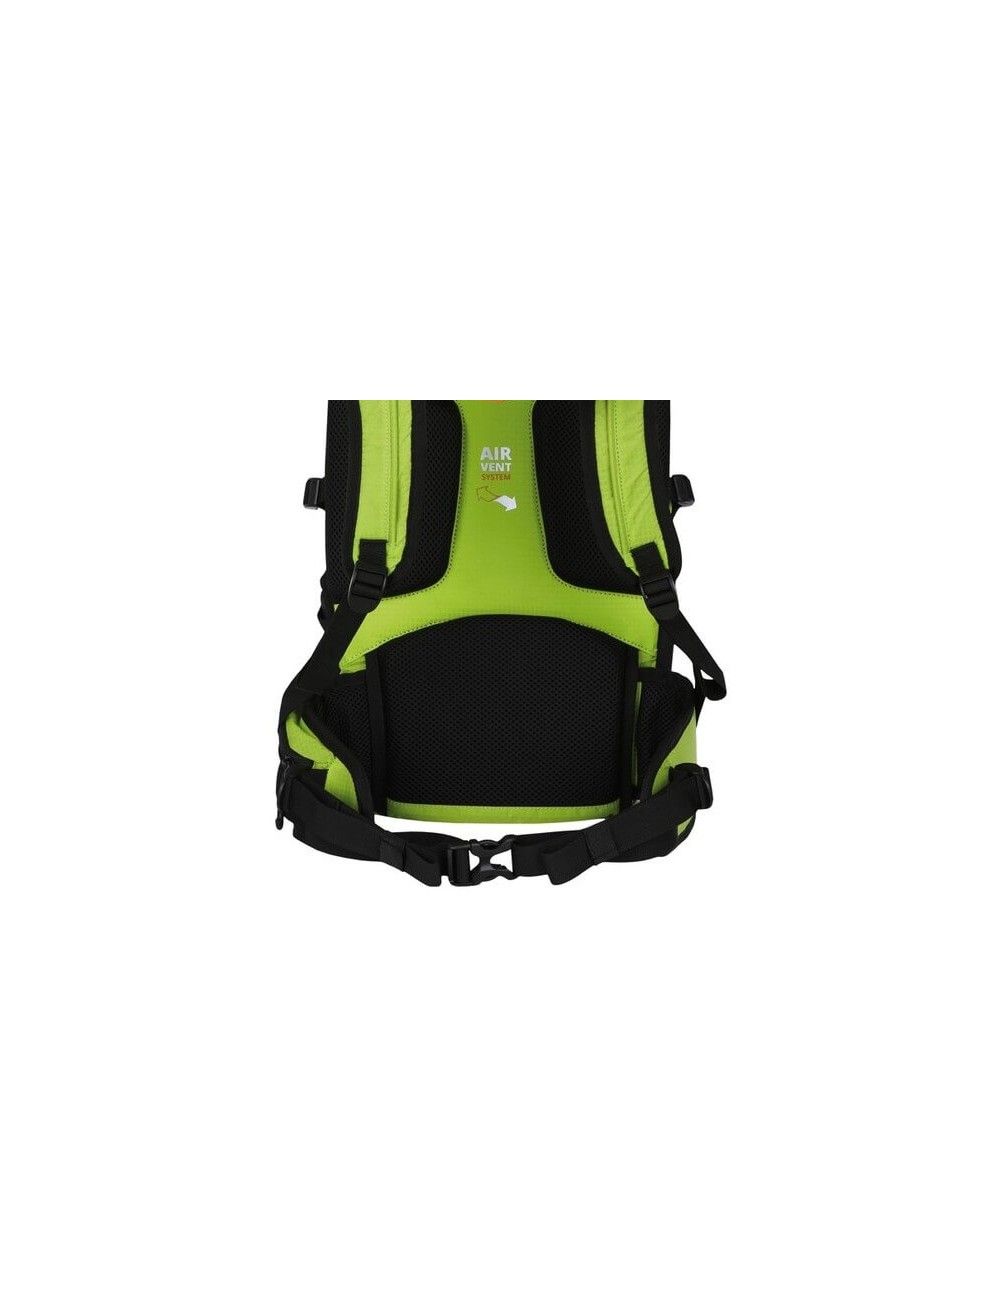 Hannah Outdoor rugzak Skipper 24 Air Vent - Groen